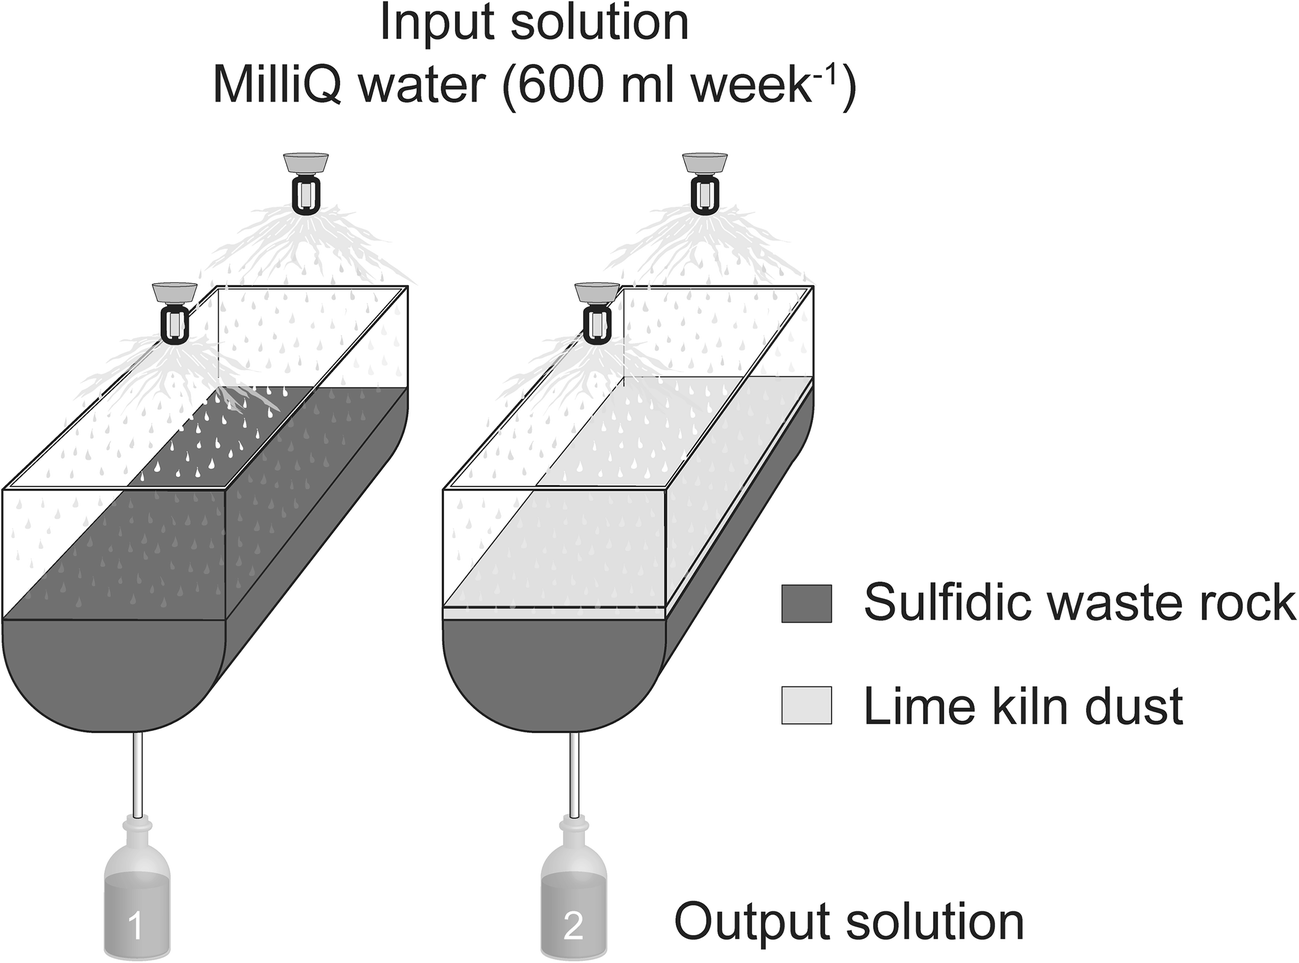 Prevention of sulfide oxidation in waste rock by the